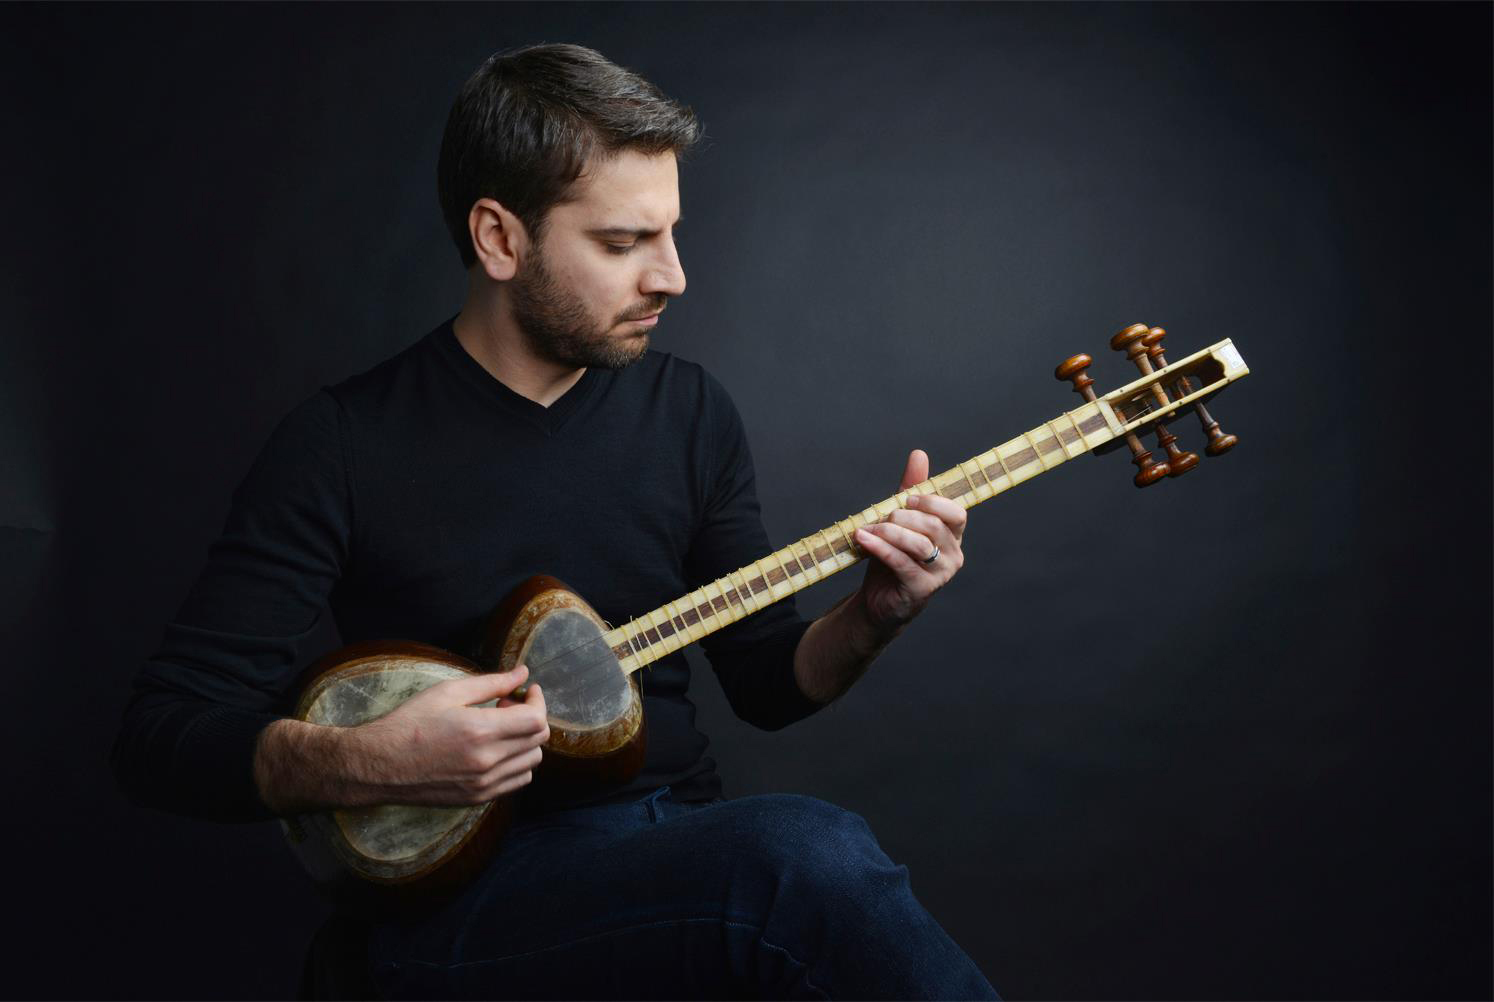 Centered: The Music and Passion of Sami Yusuf